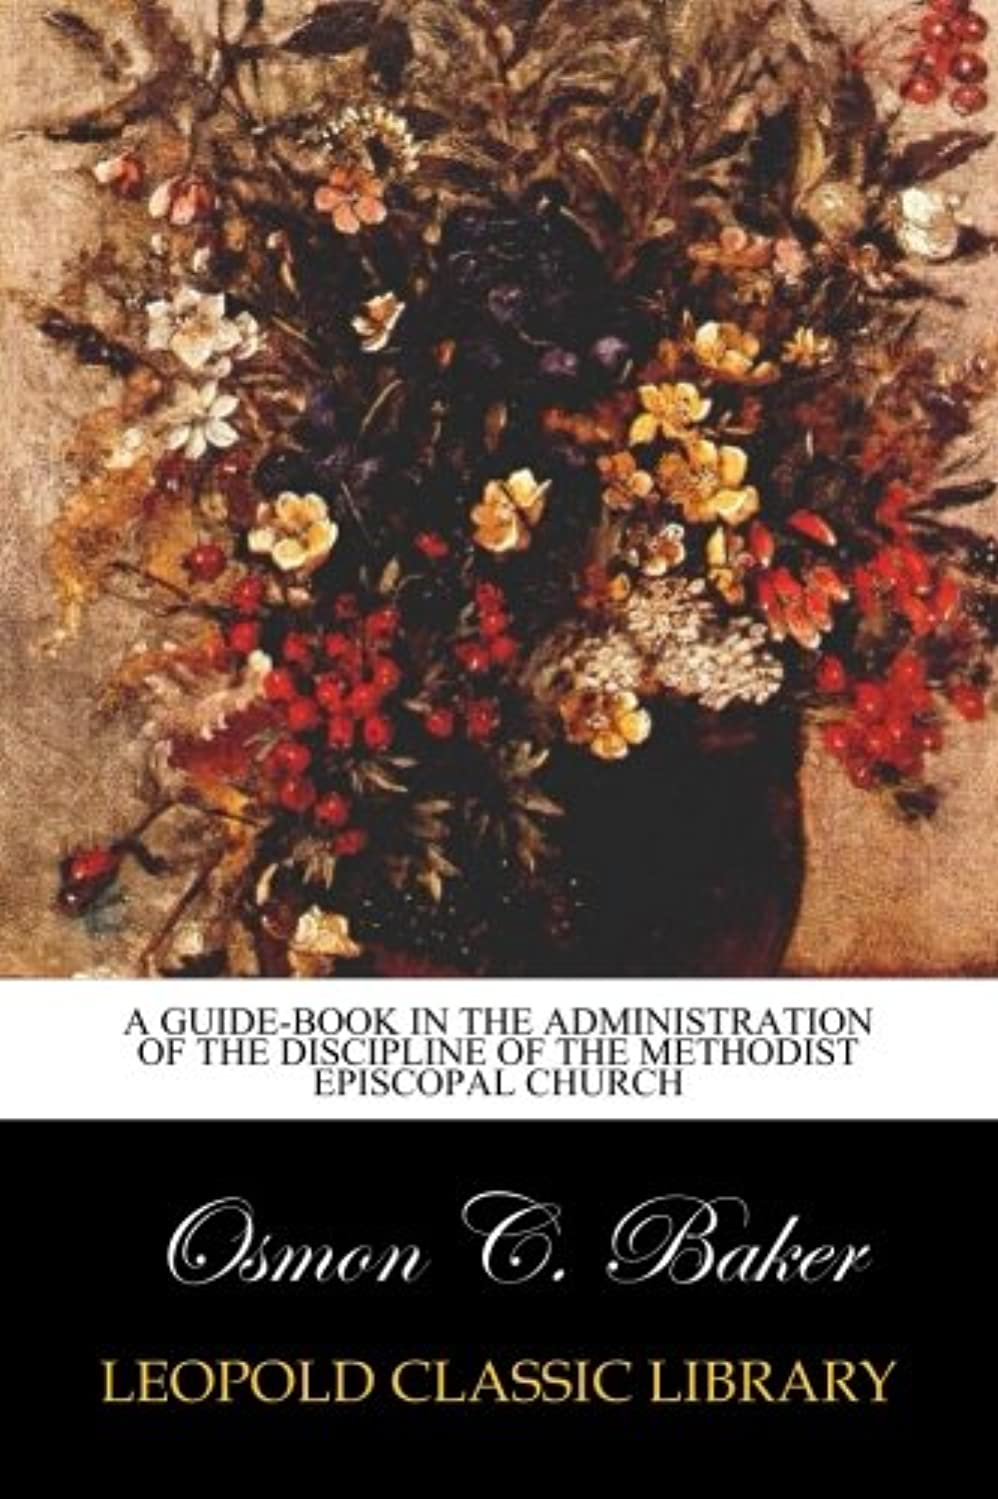 採用時計あたりA guide-book in the administration of the discipline of the Methodist Episcopal Church